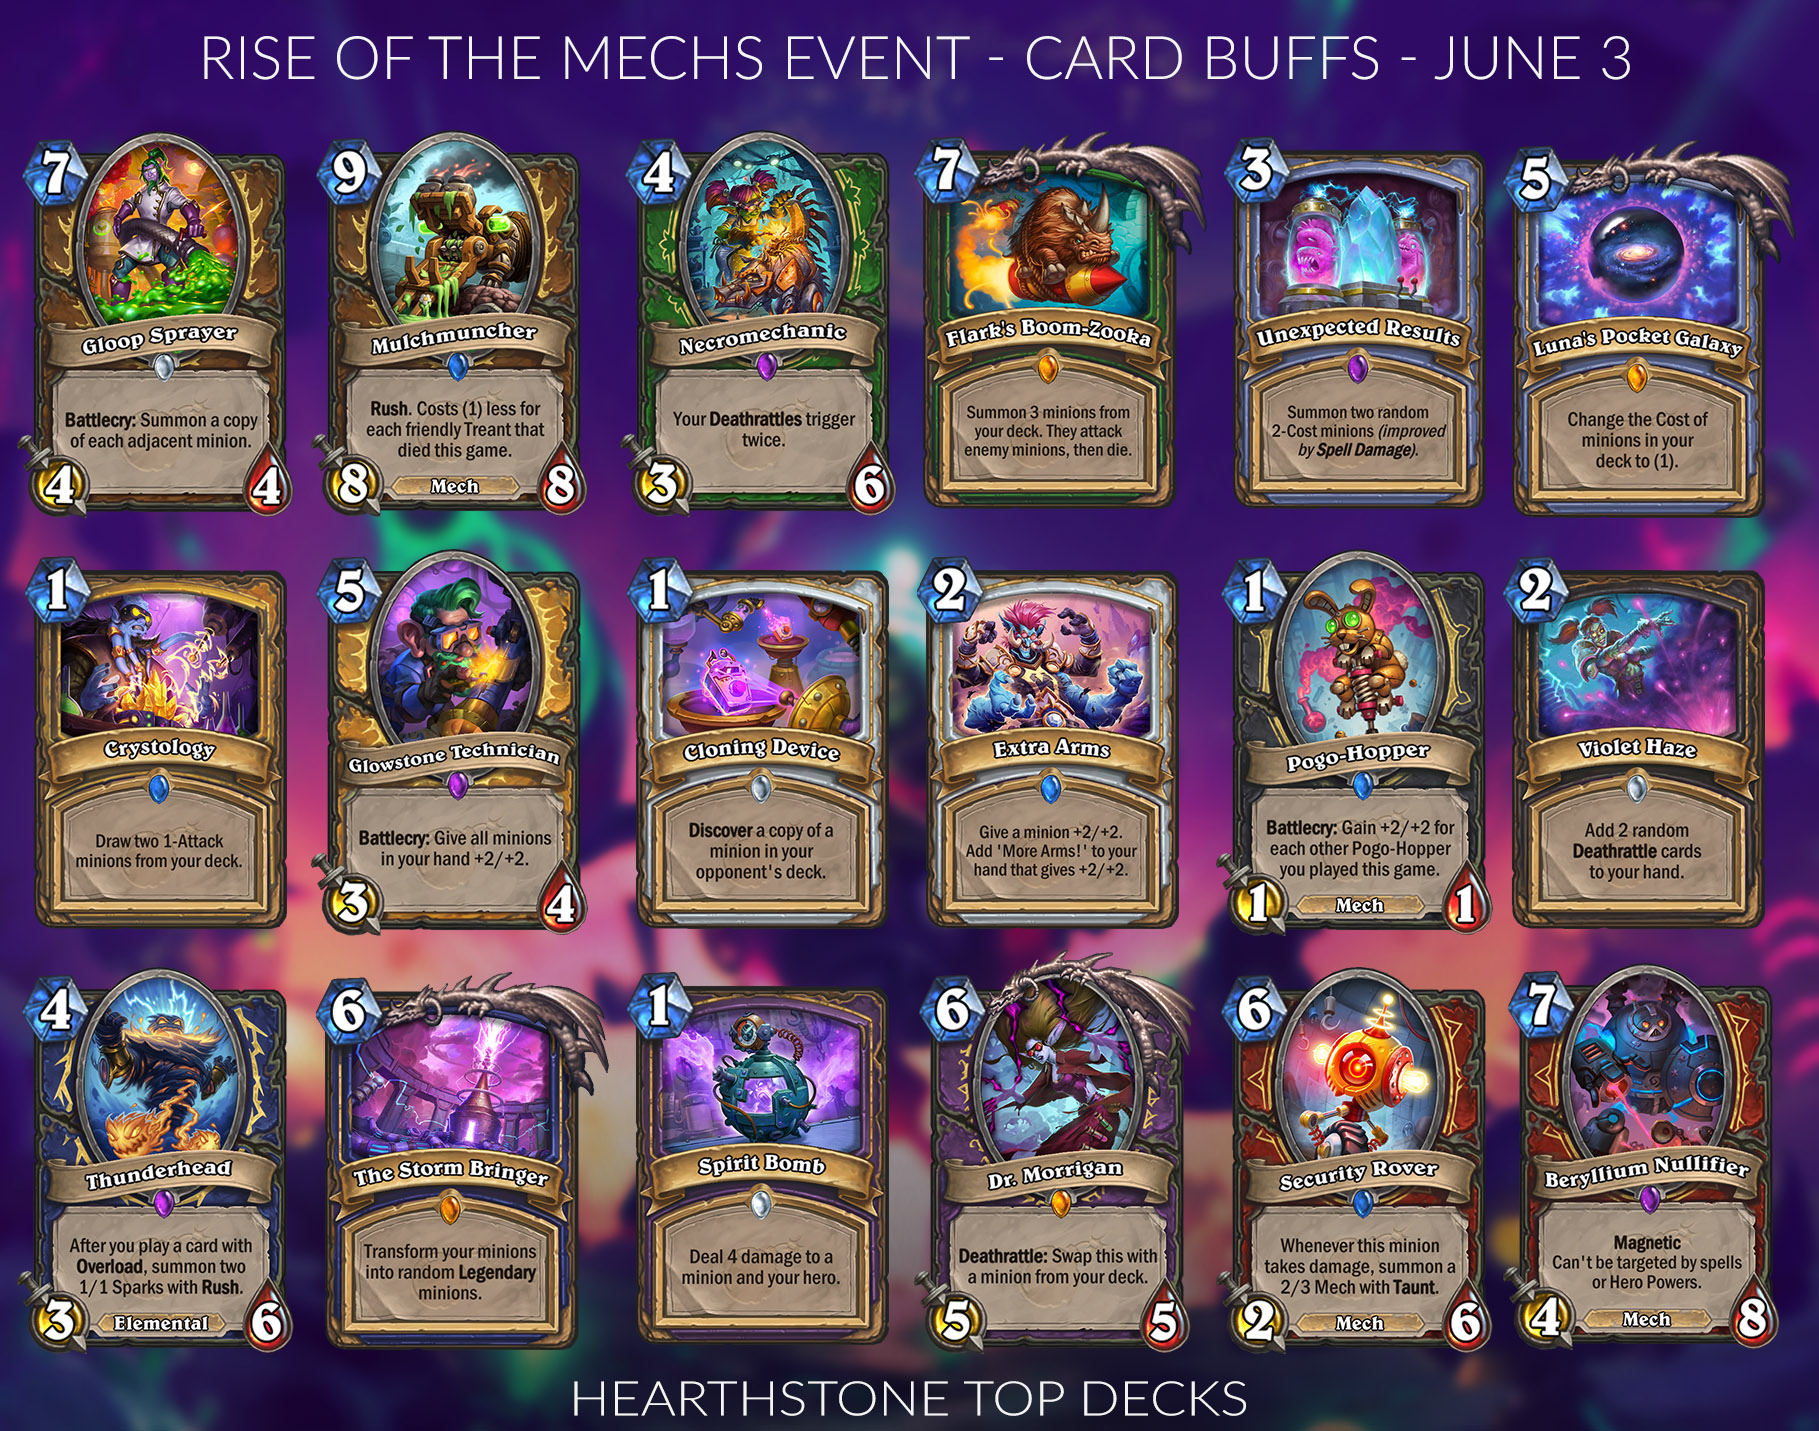 https://www.hearthstonetopdecks.com/wp-content/uploads/2019/05/june-3-card-buffs.jpg